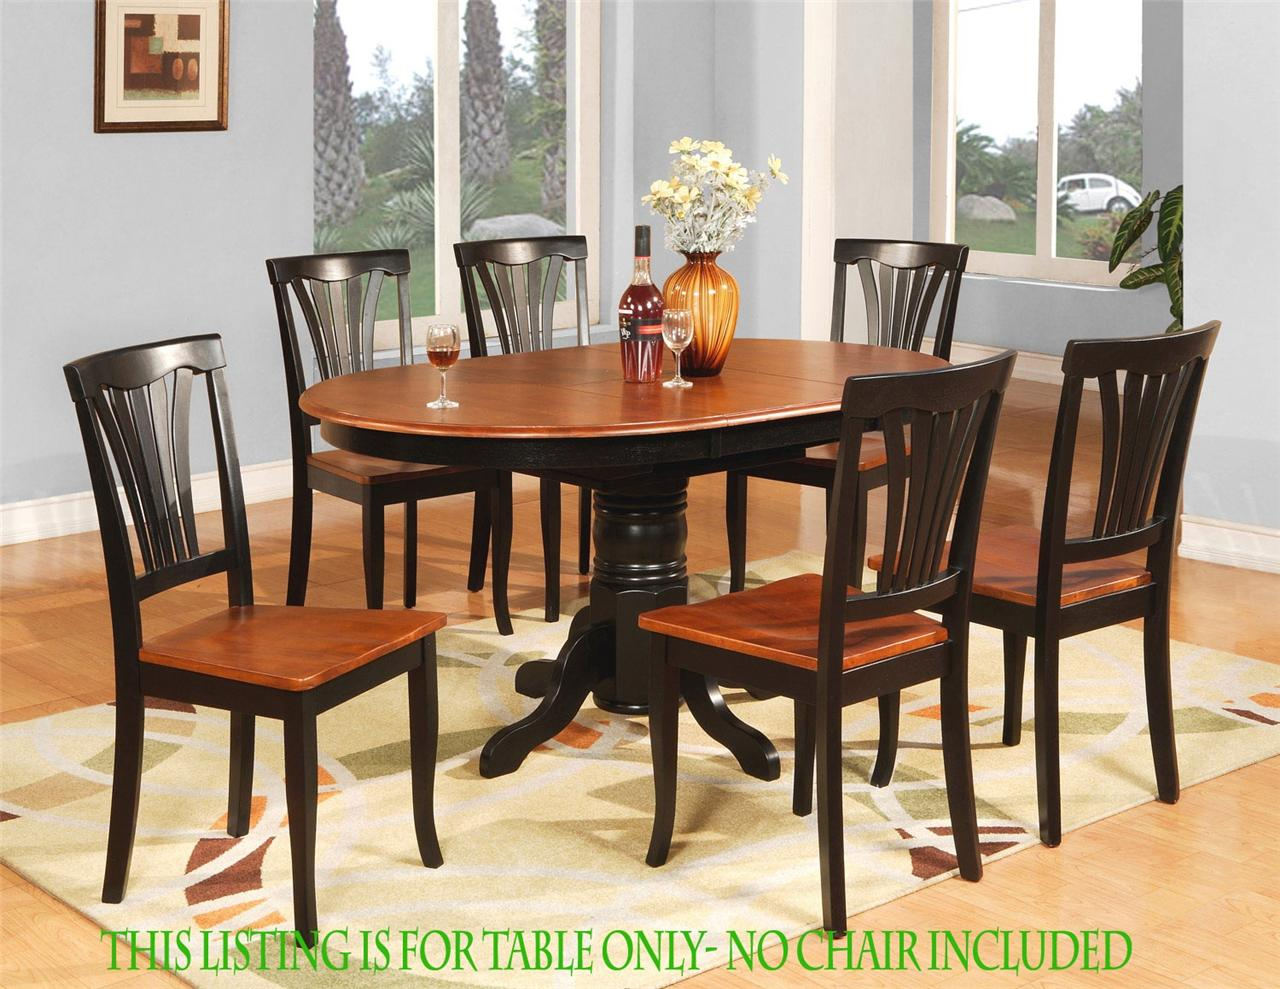 Oval dinette kitchen dining room table only 42 x 60 with for Kitchen table set 6 chairs